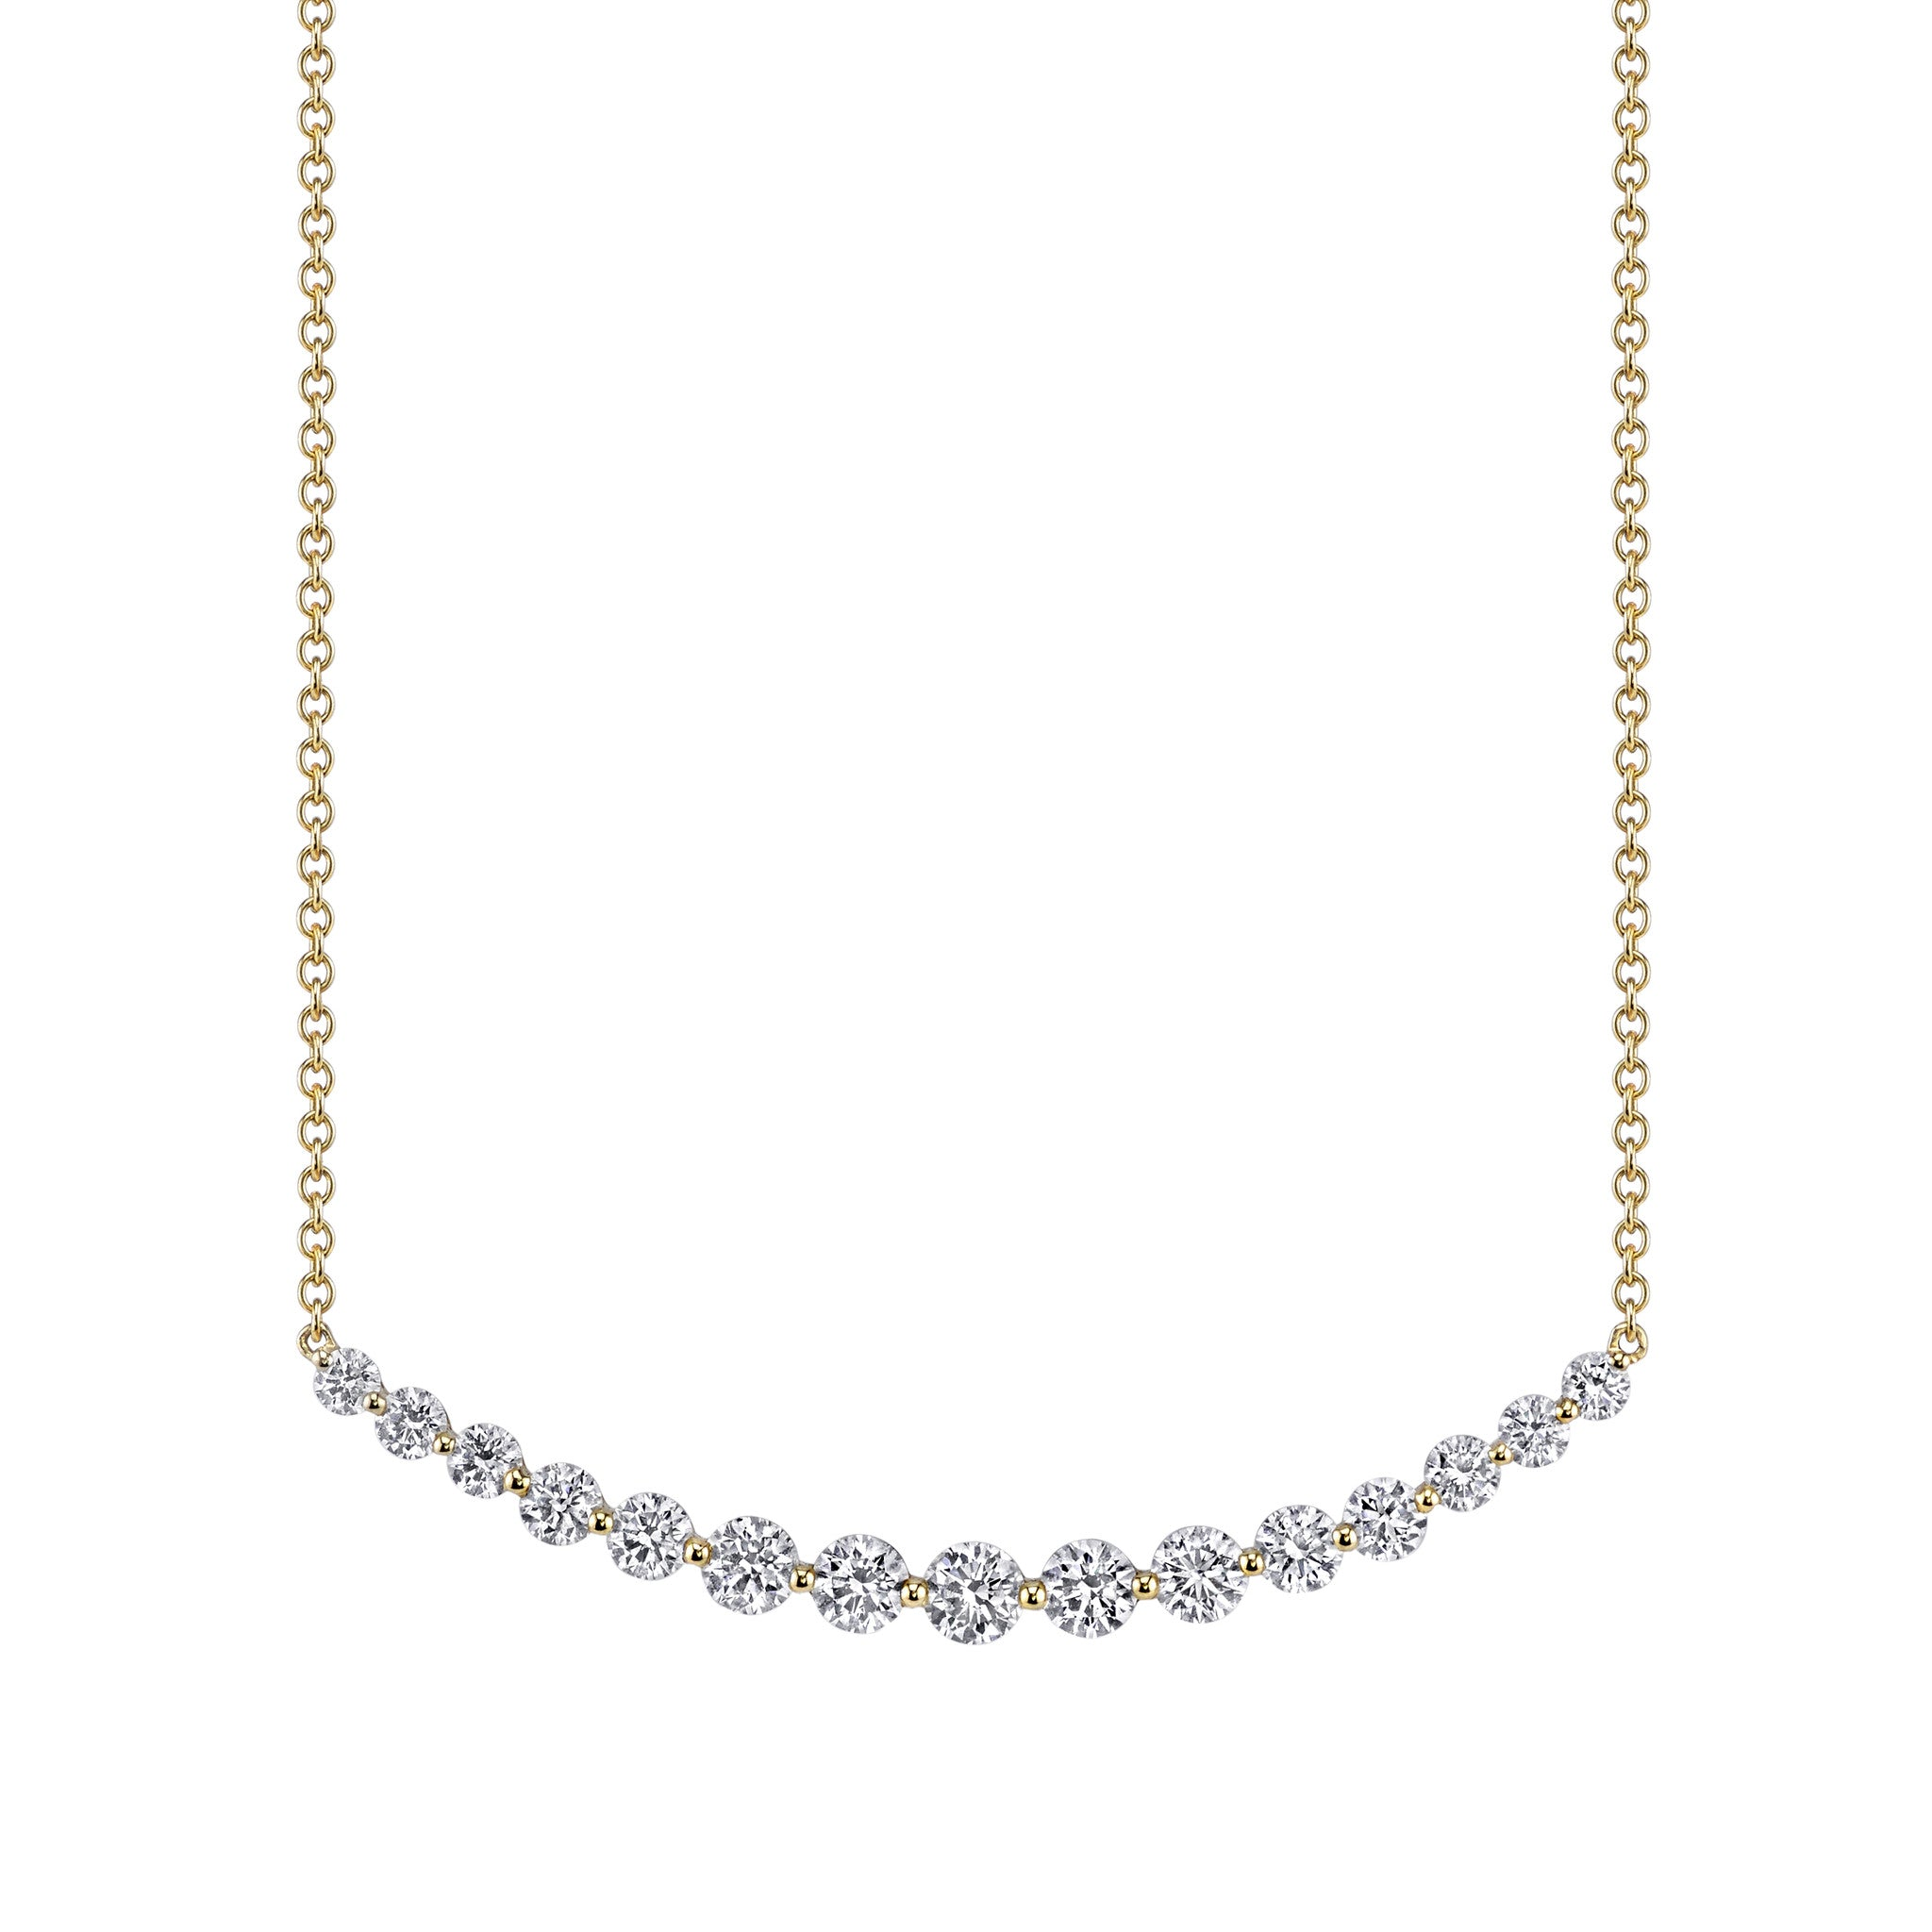 marquis necklaces wg platinum gold pendants category bar product necklace jewelers white diamond jewelry